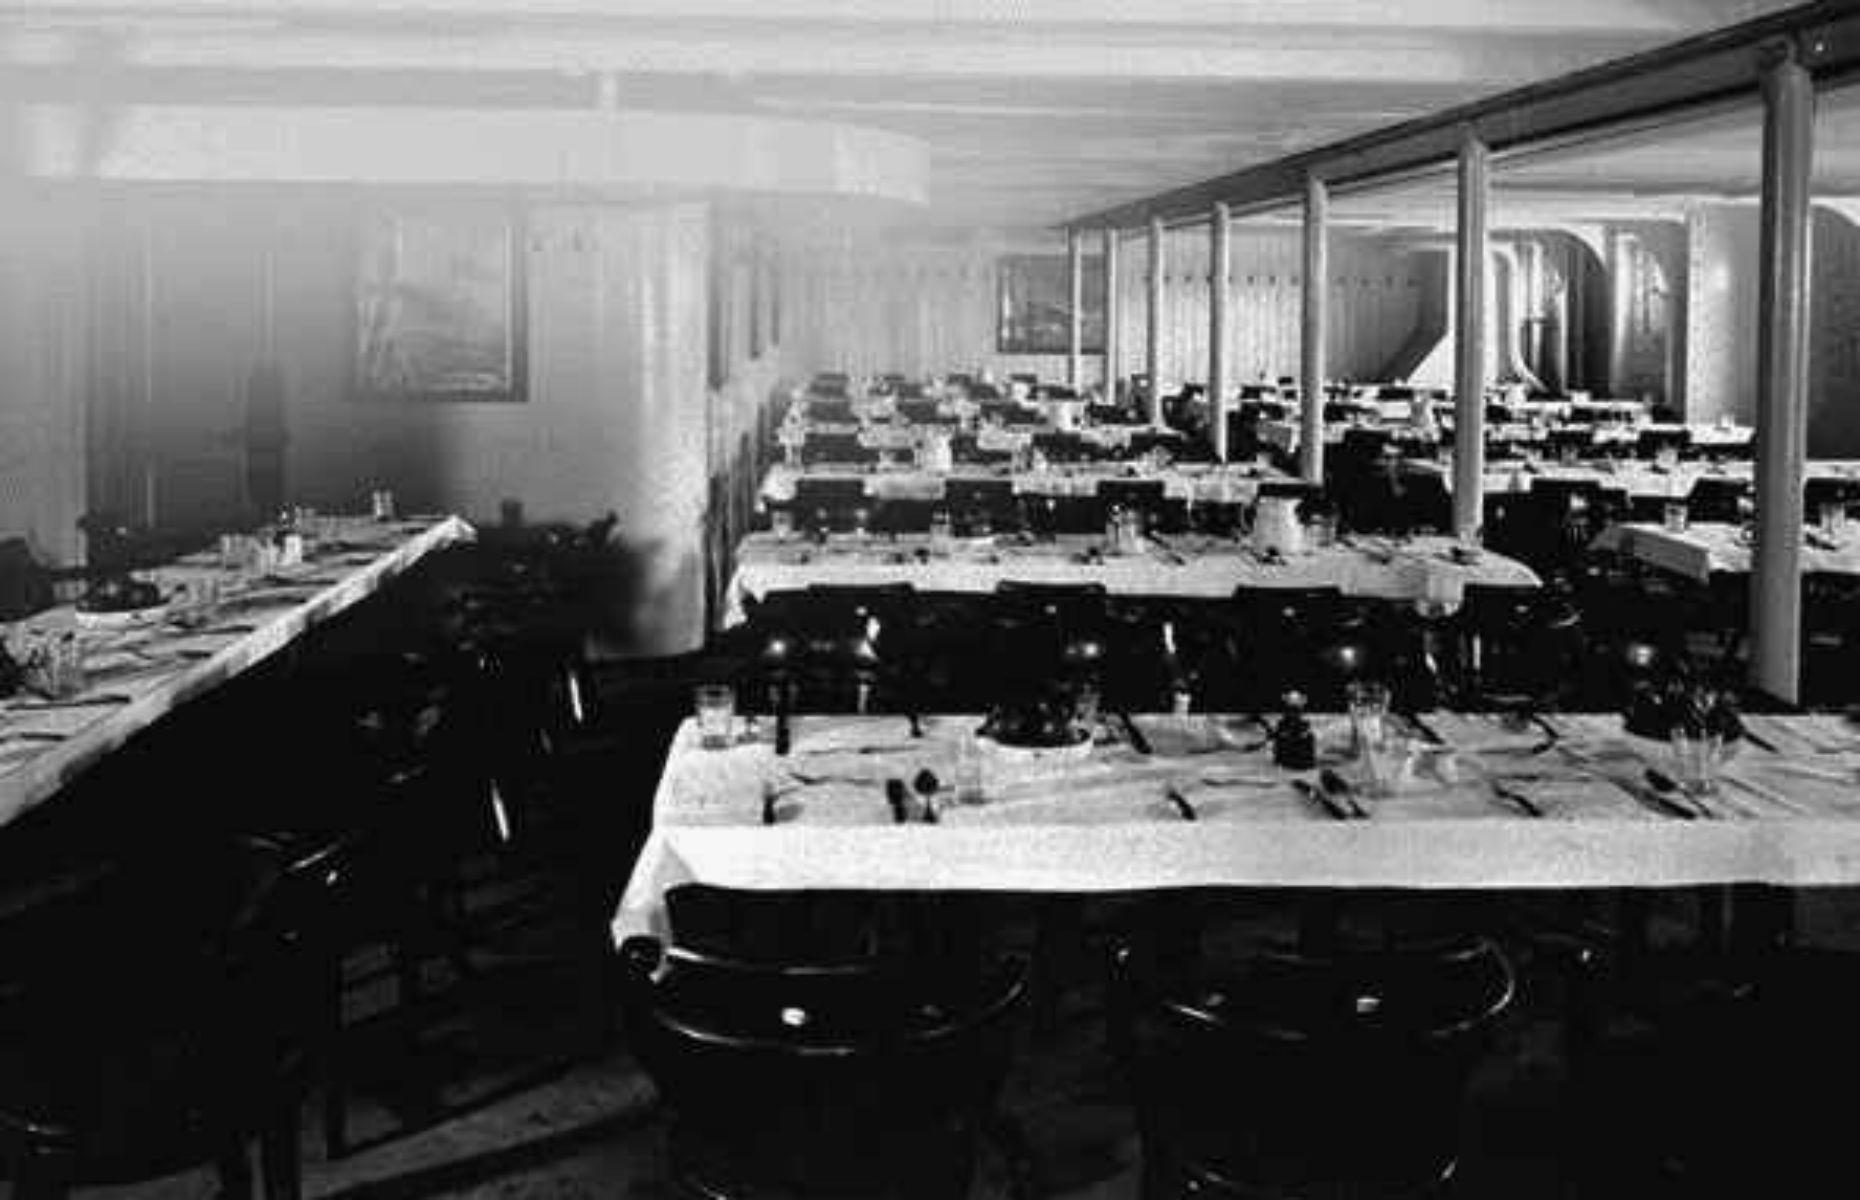 Slide 28 of 46: The dining salon had white enameled walls and tables were communal, meaning little privacy for passengers. Third class passengers weren't offered a choice of menu, but they had freshly baked bread and fruit every day. It was a huge luxury when compared with other shipping lines who usually made steerage passengers bring their own food. (Pictured is the dining room on the Olympic.)